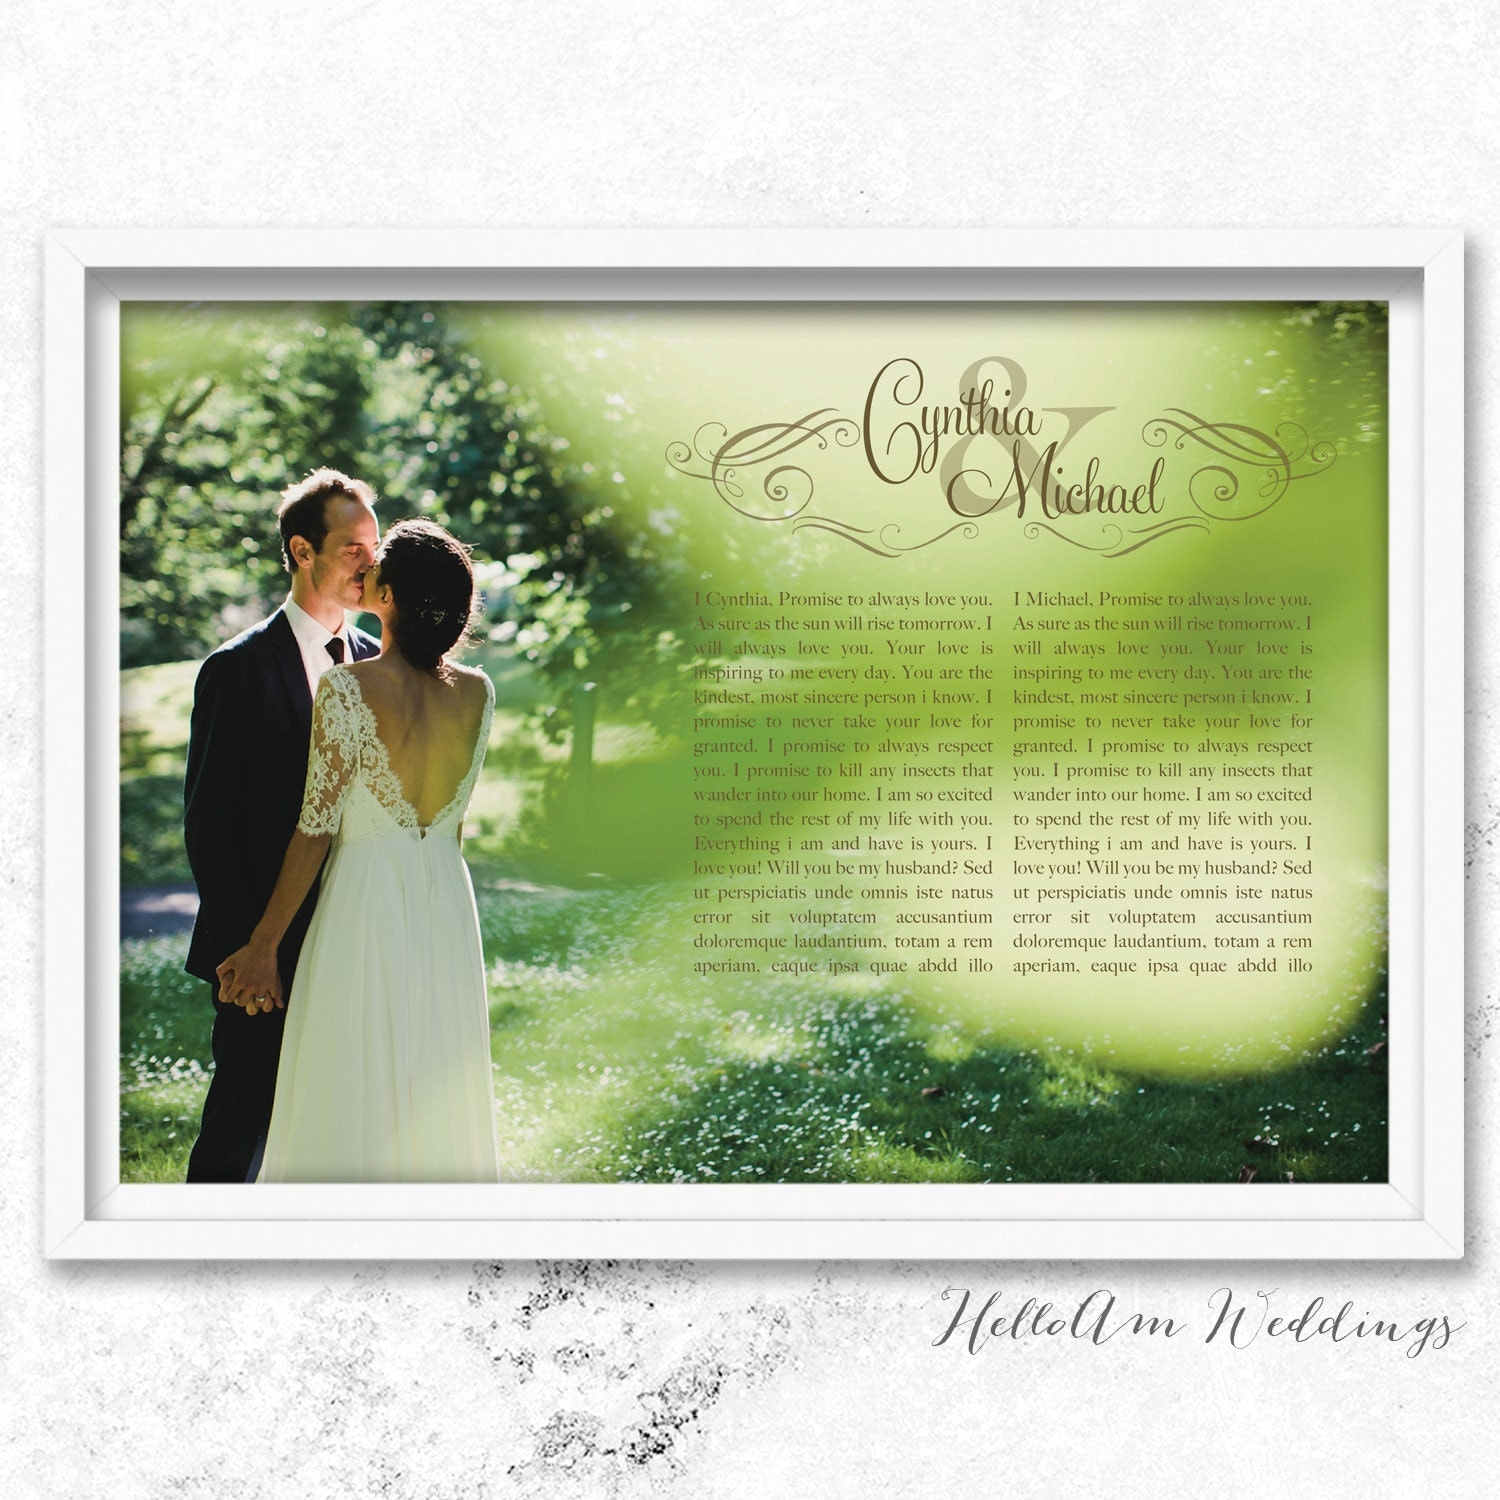 Wedding Gift For Bride And Groom Singapore : parent wedding gift wedding gift for bride and groom by HelloAm